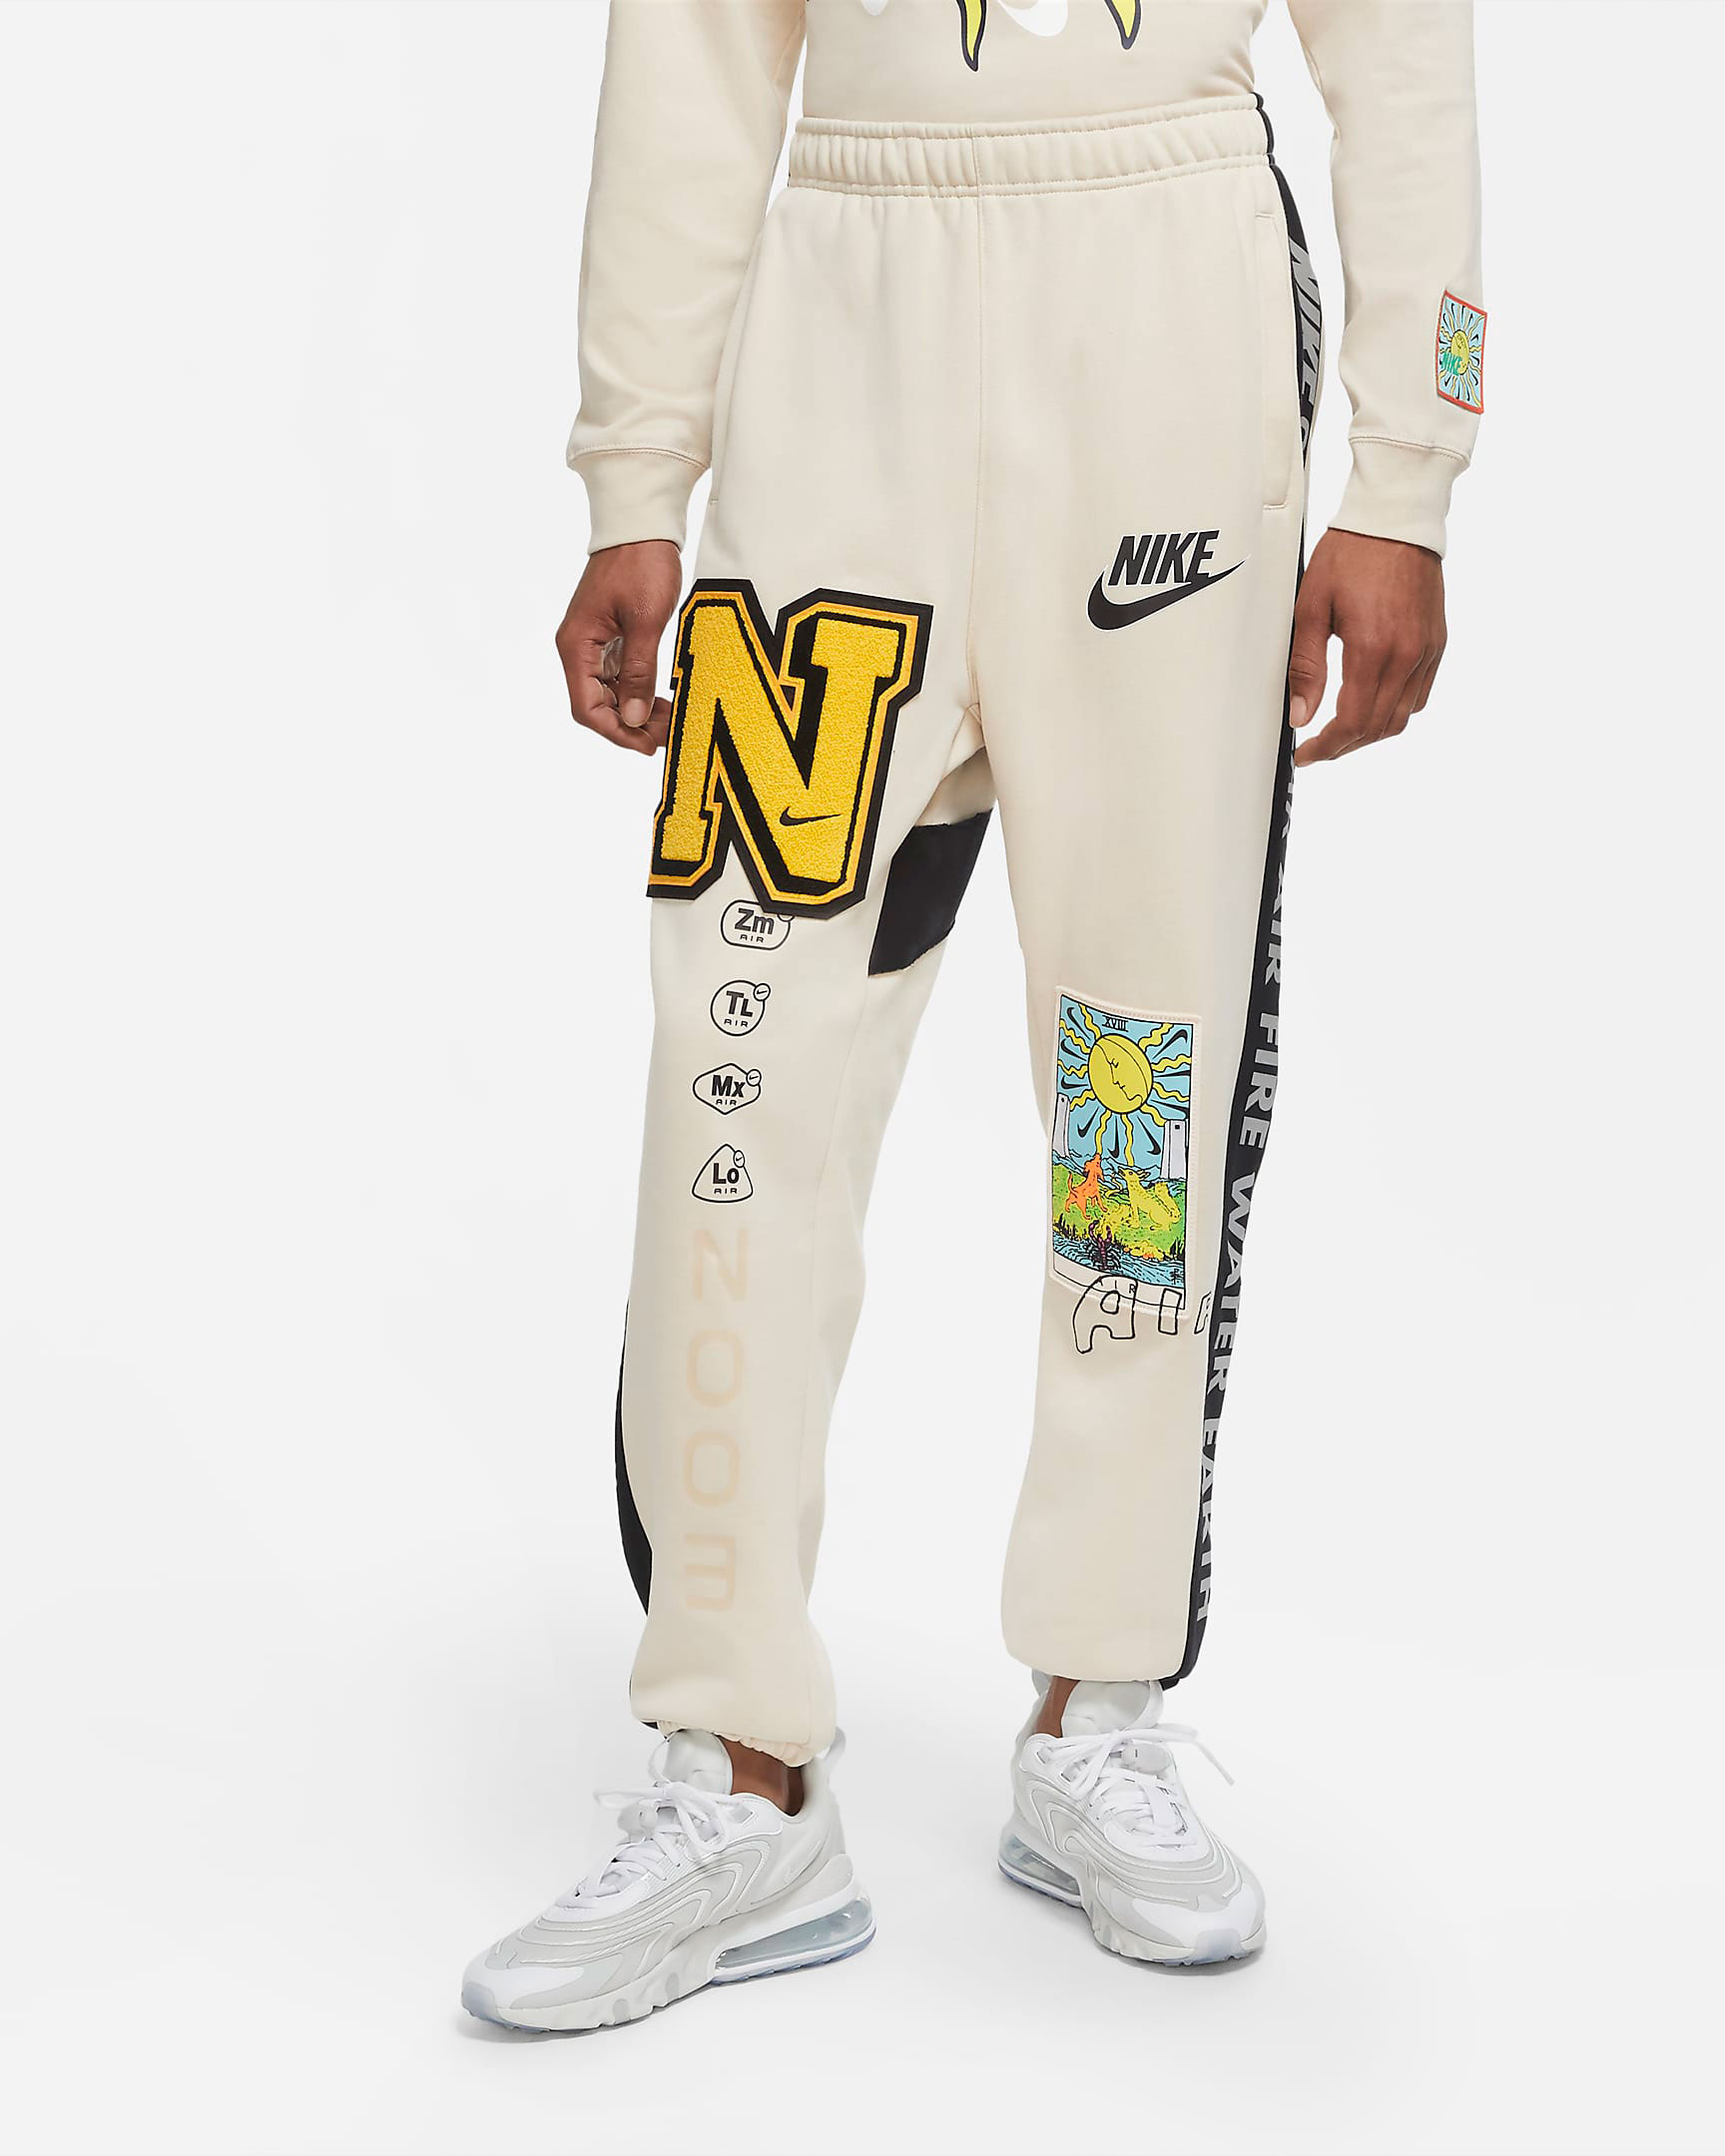 nike-air-max-drip-jogger-pants-oatmeal-1